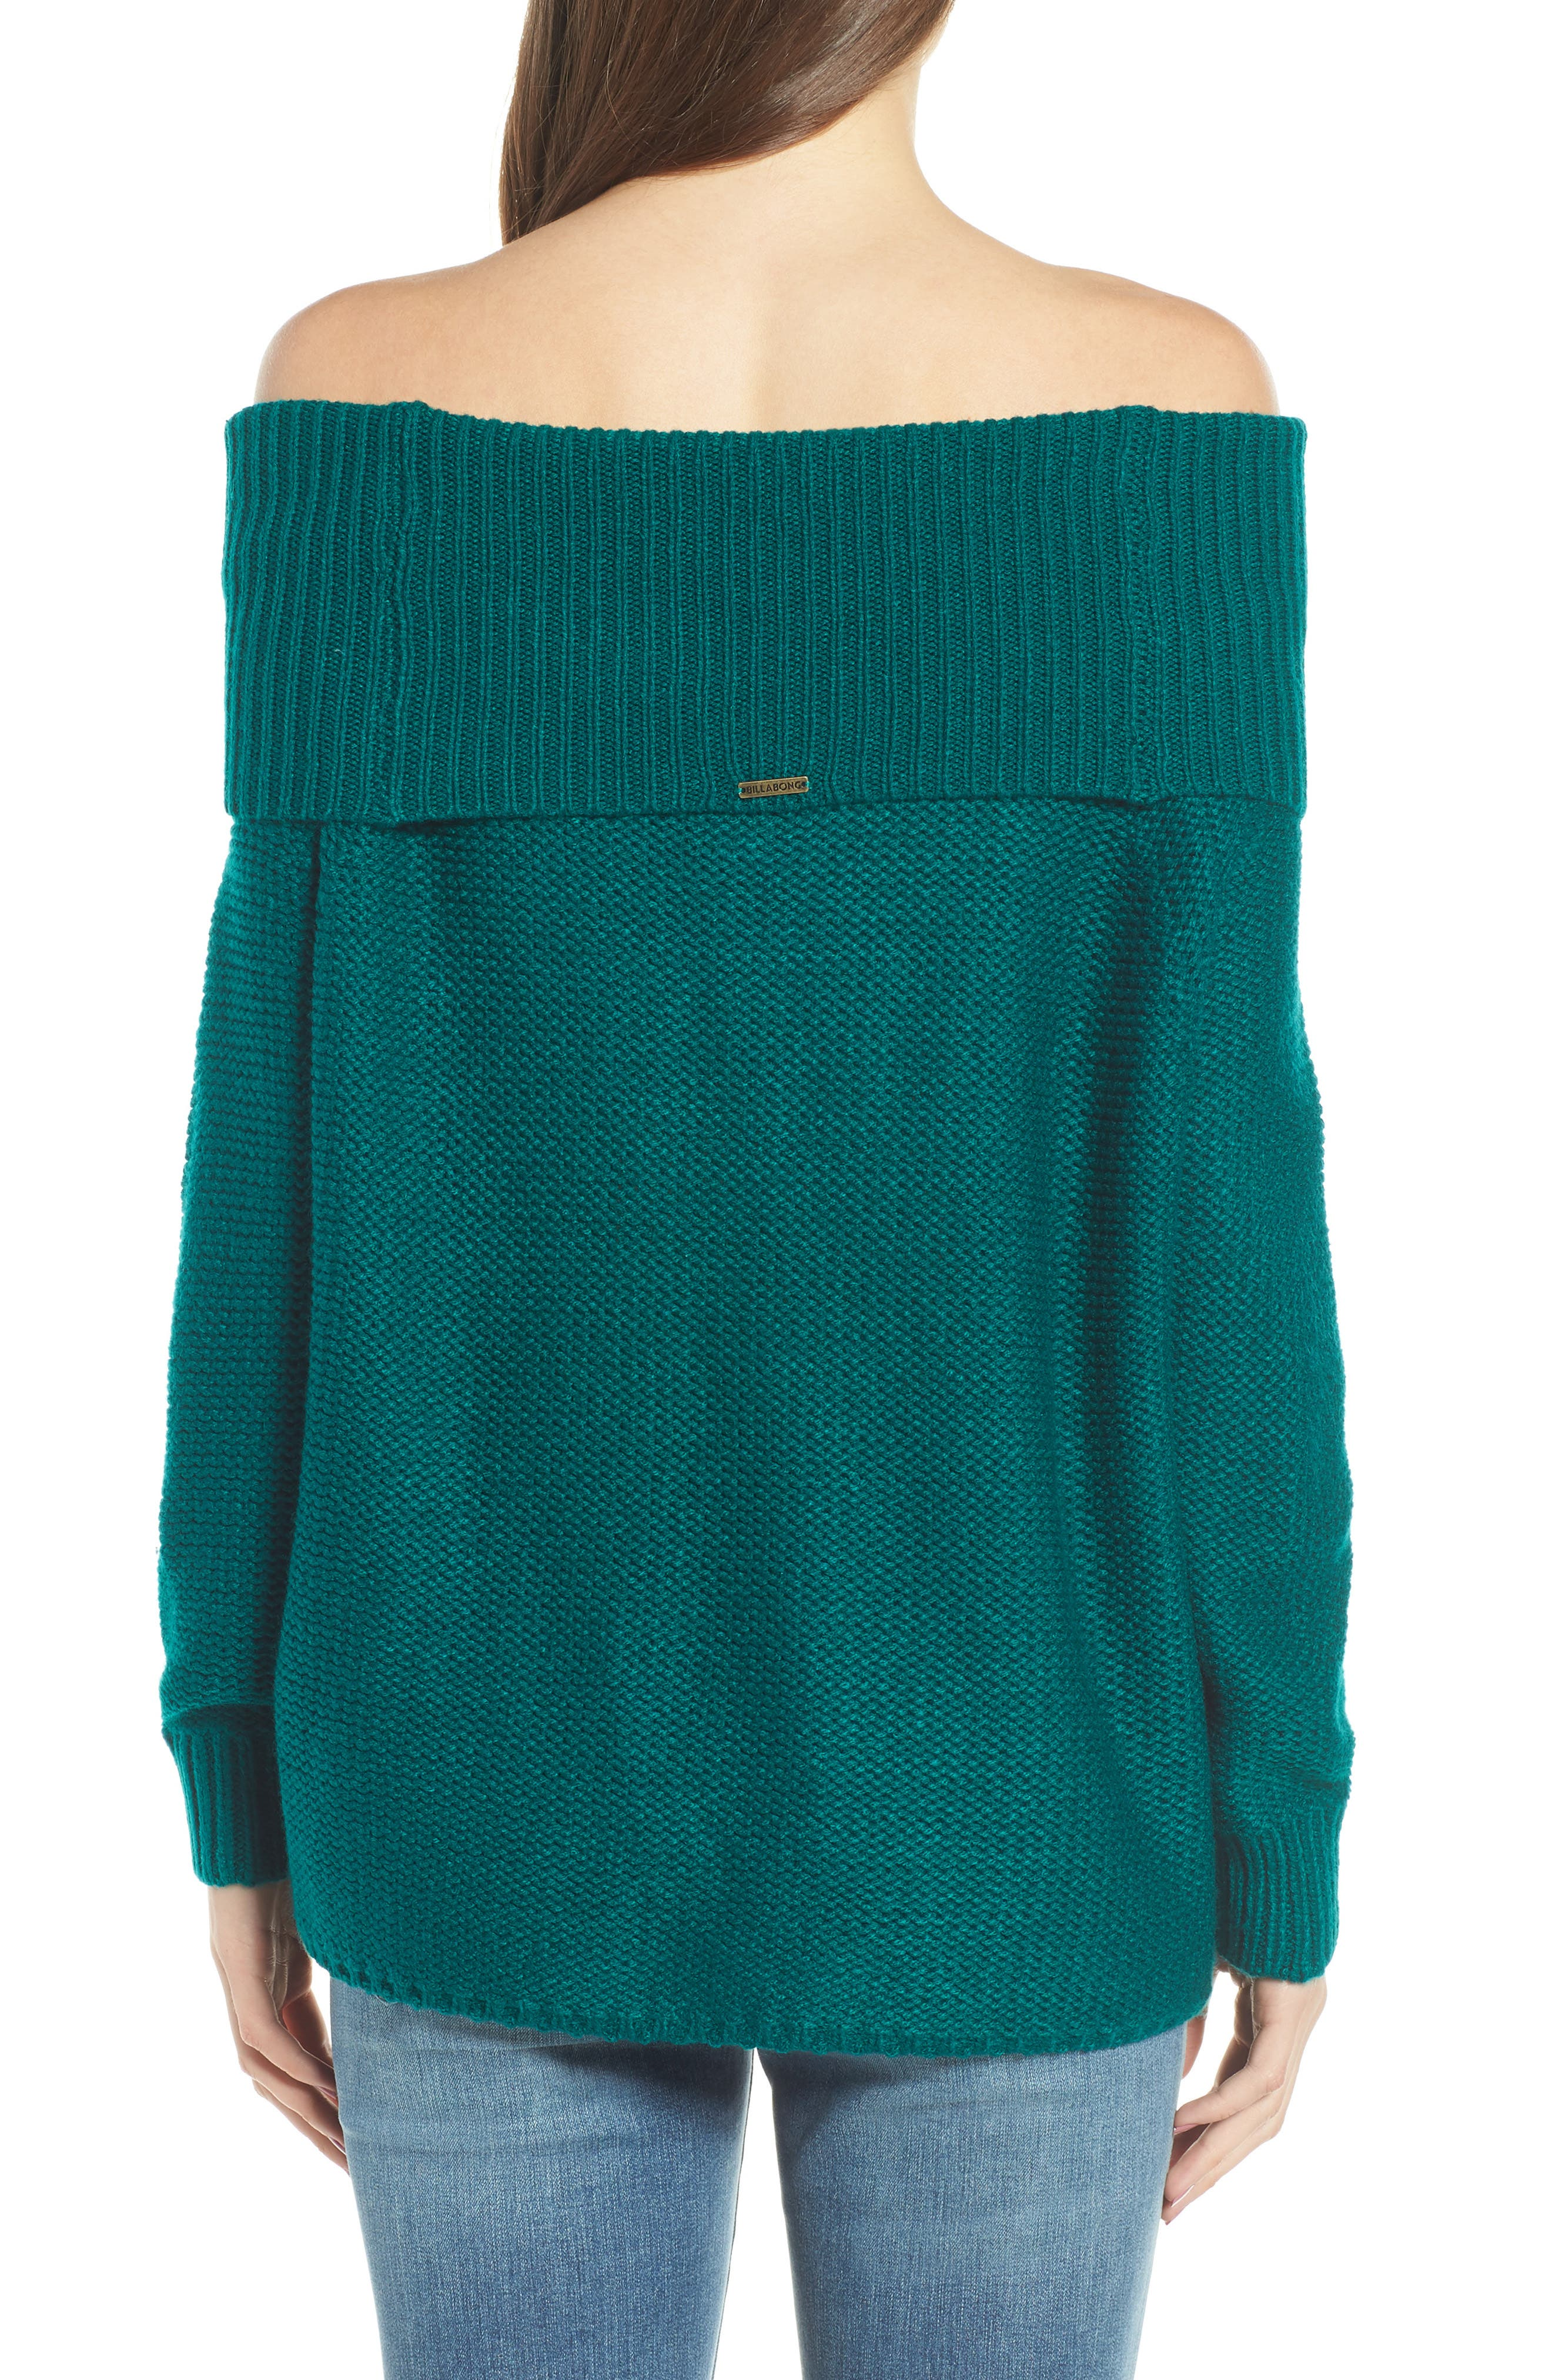 Off Shore Cable Knit Sweater,                             Alternate thumbnail 2, color,                             Deep Lagoon